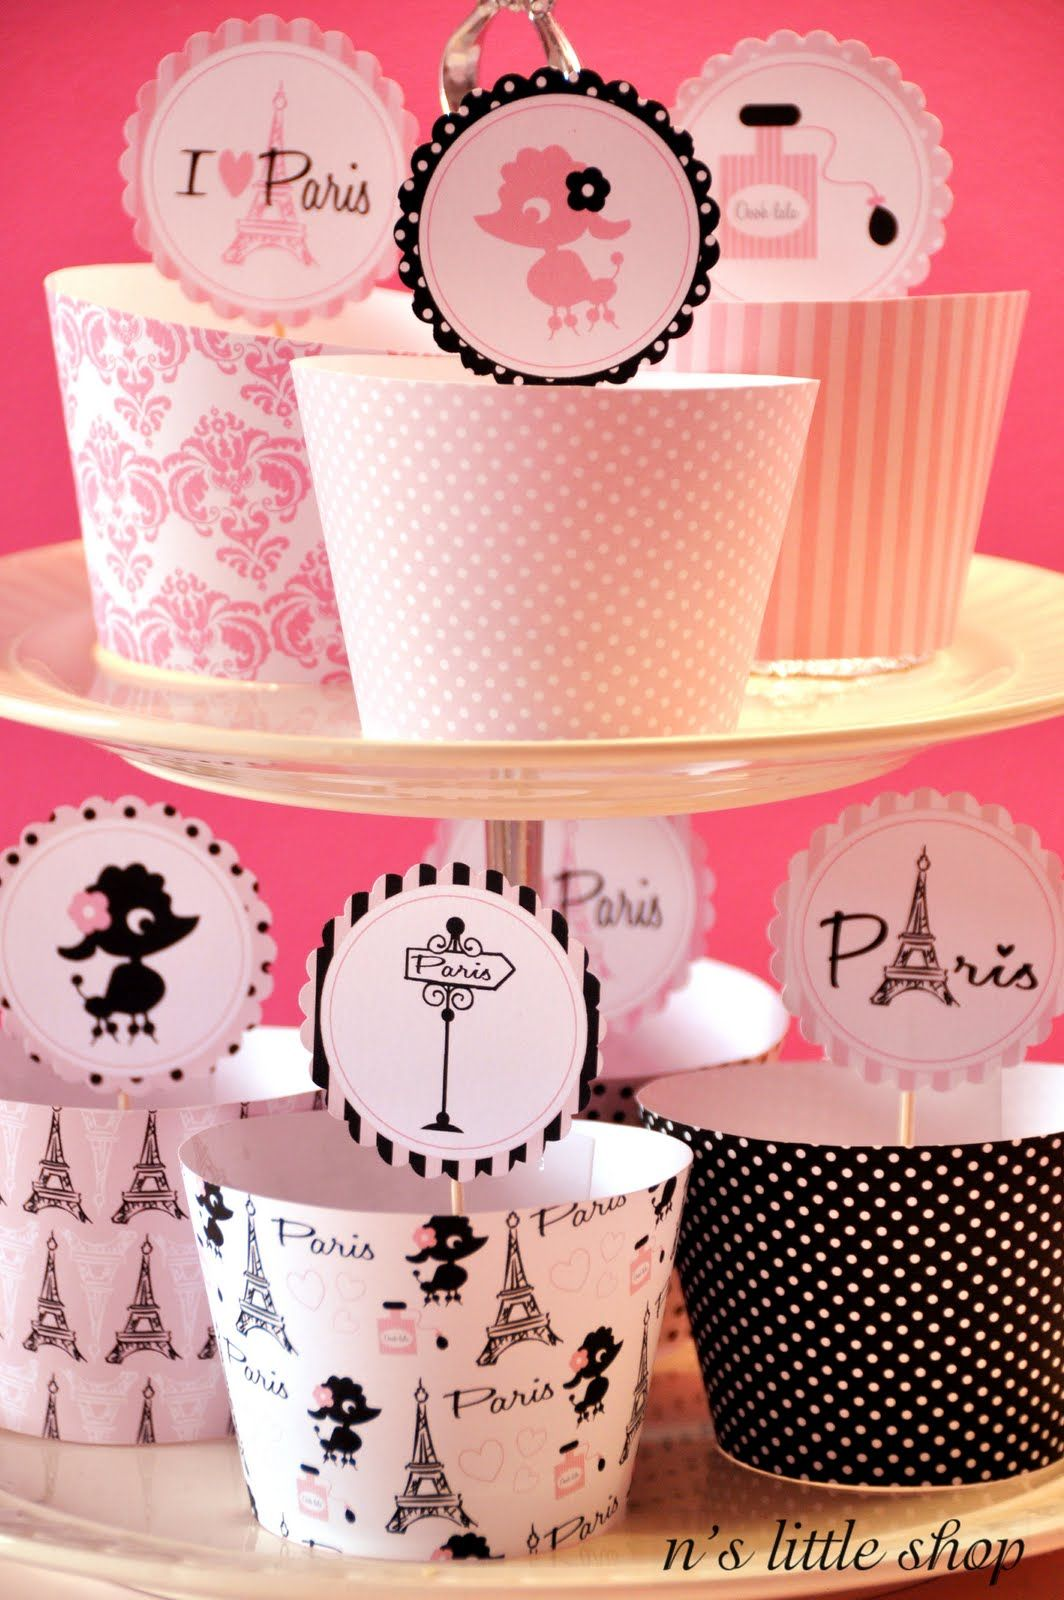 Decoration Cupcake Toppers | nslittleshop party decorations and more: Paris Oui, Oui,